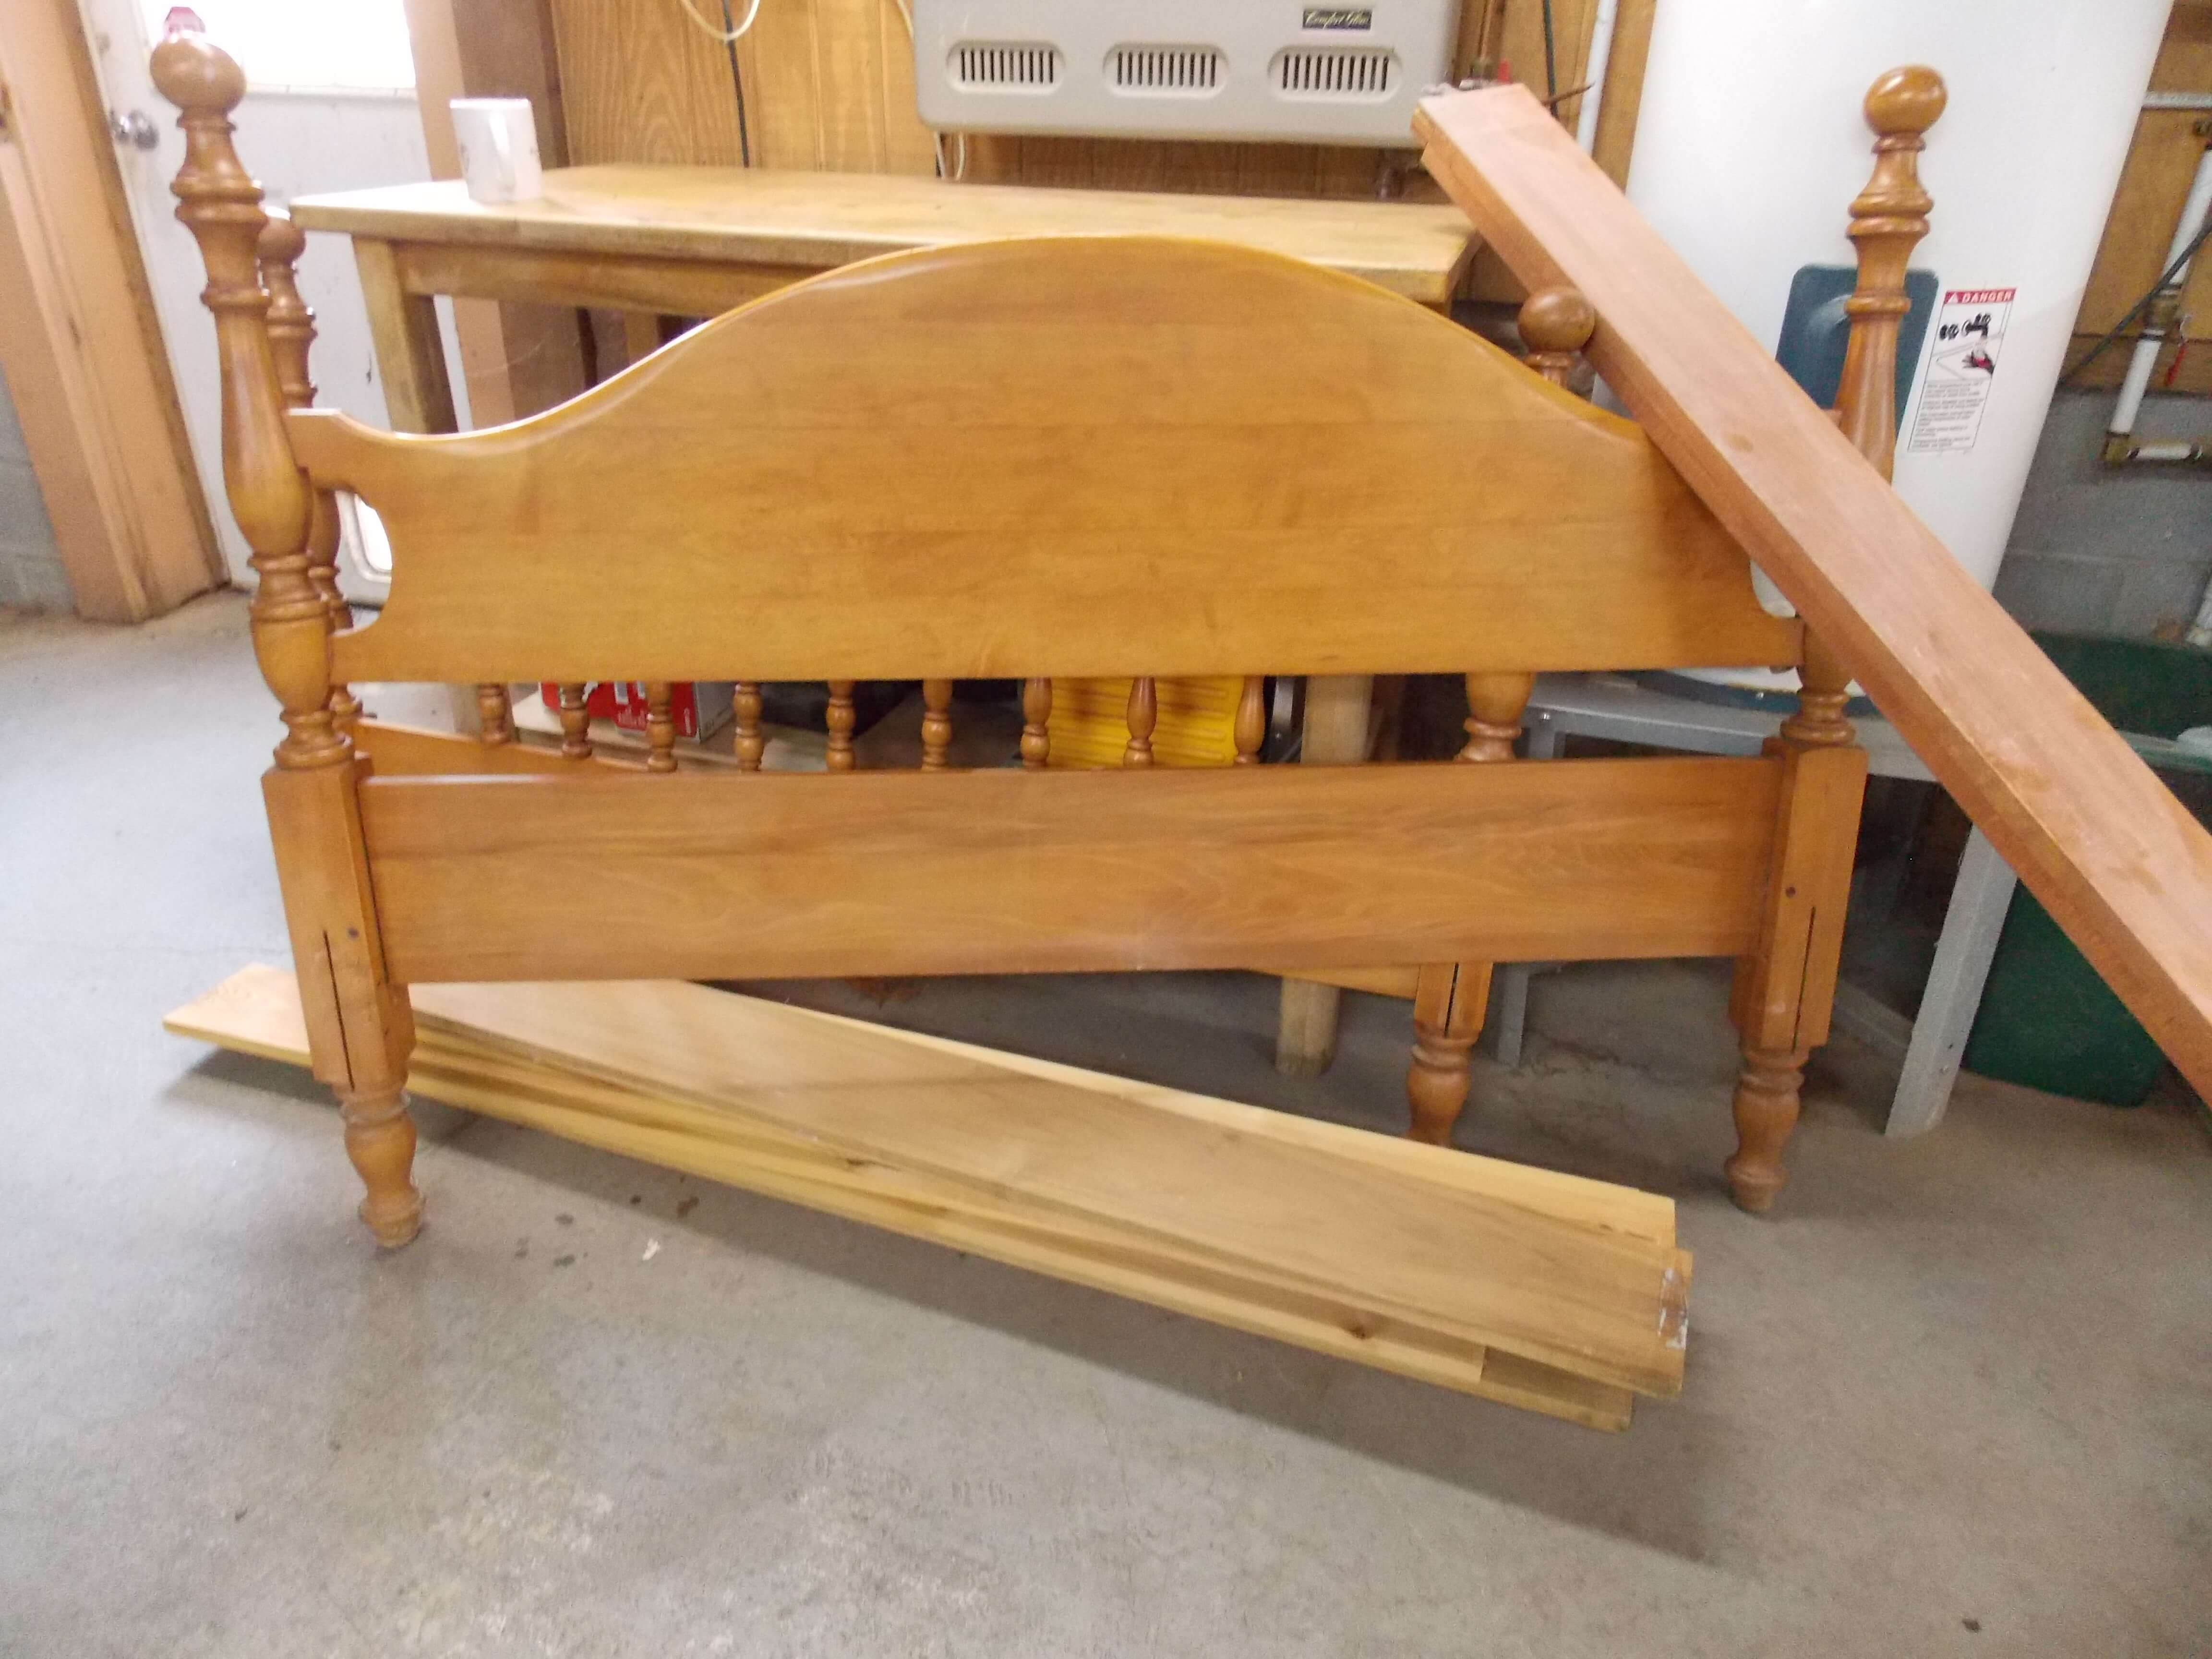 Antique family bed frame before refurb project